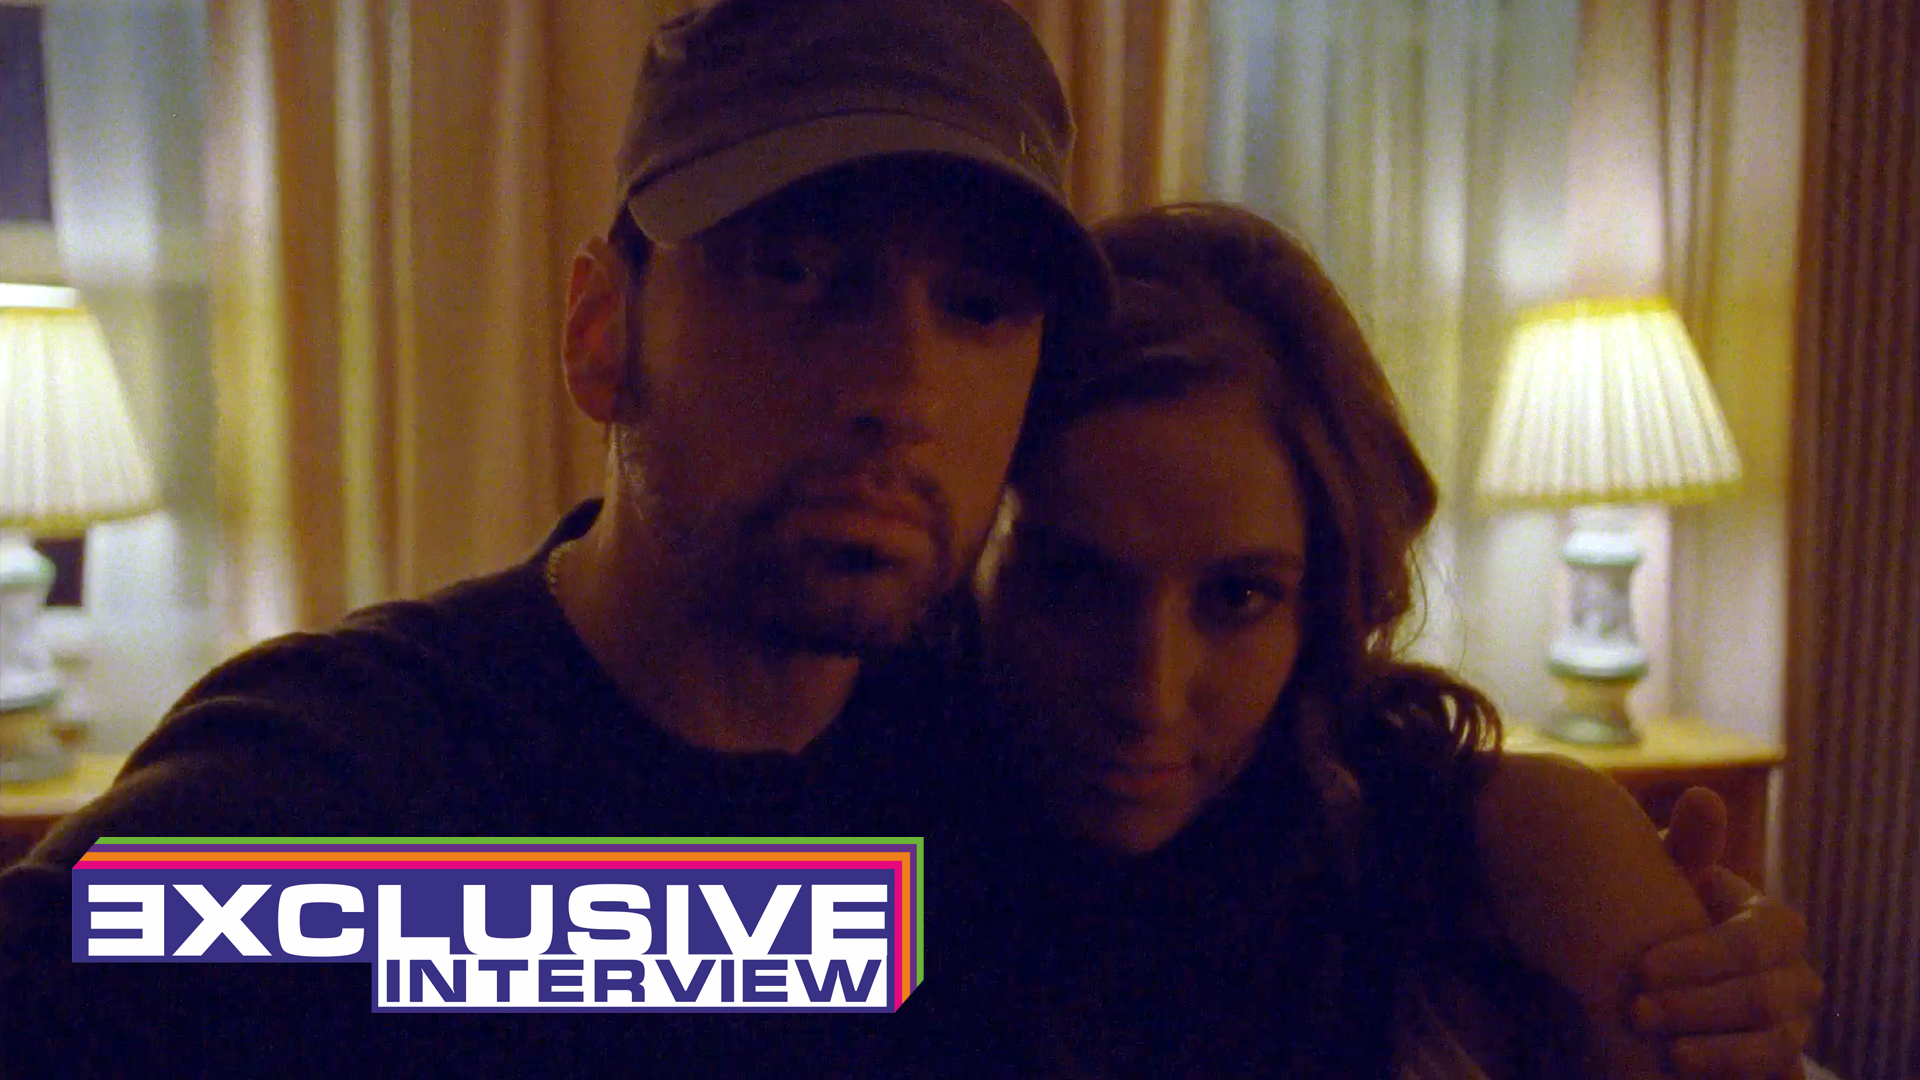 Eminem.Pro exclusive interview with Sarati, actress who played Suzanne in Eminem's and Ed Sheeran's video